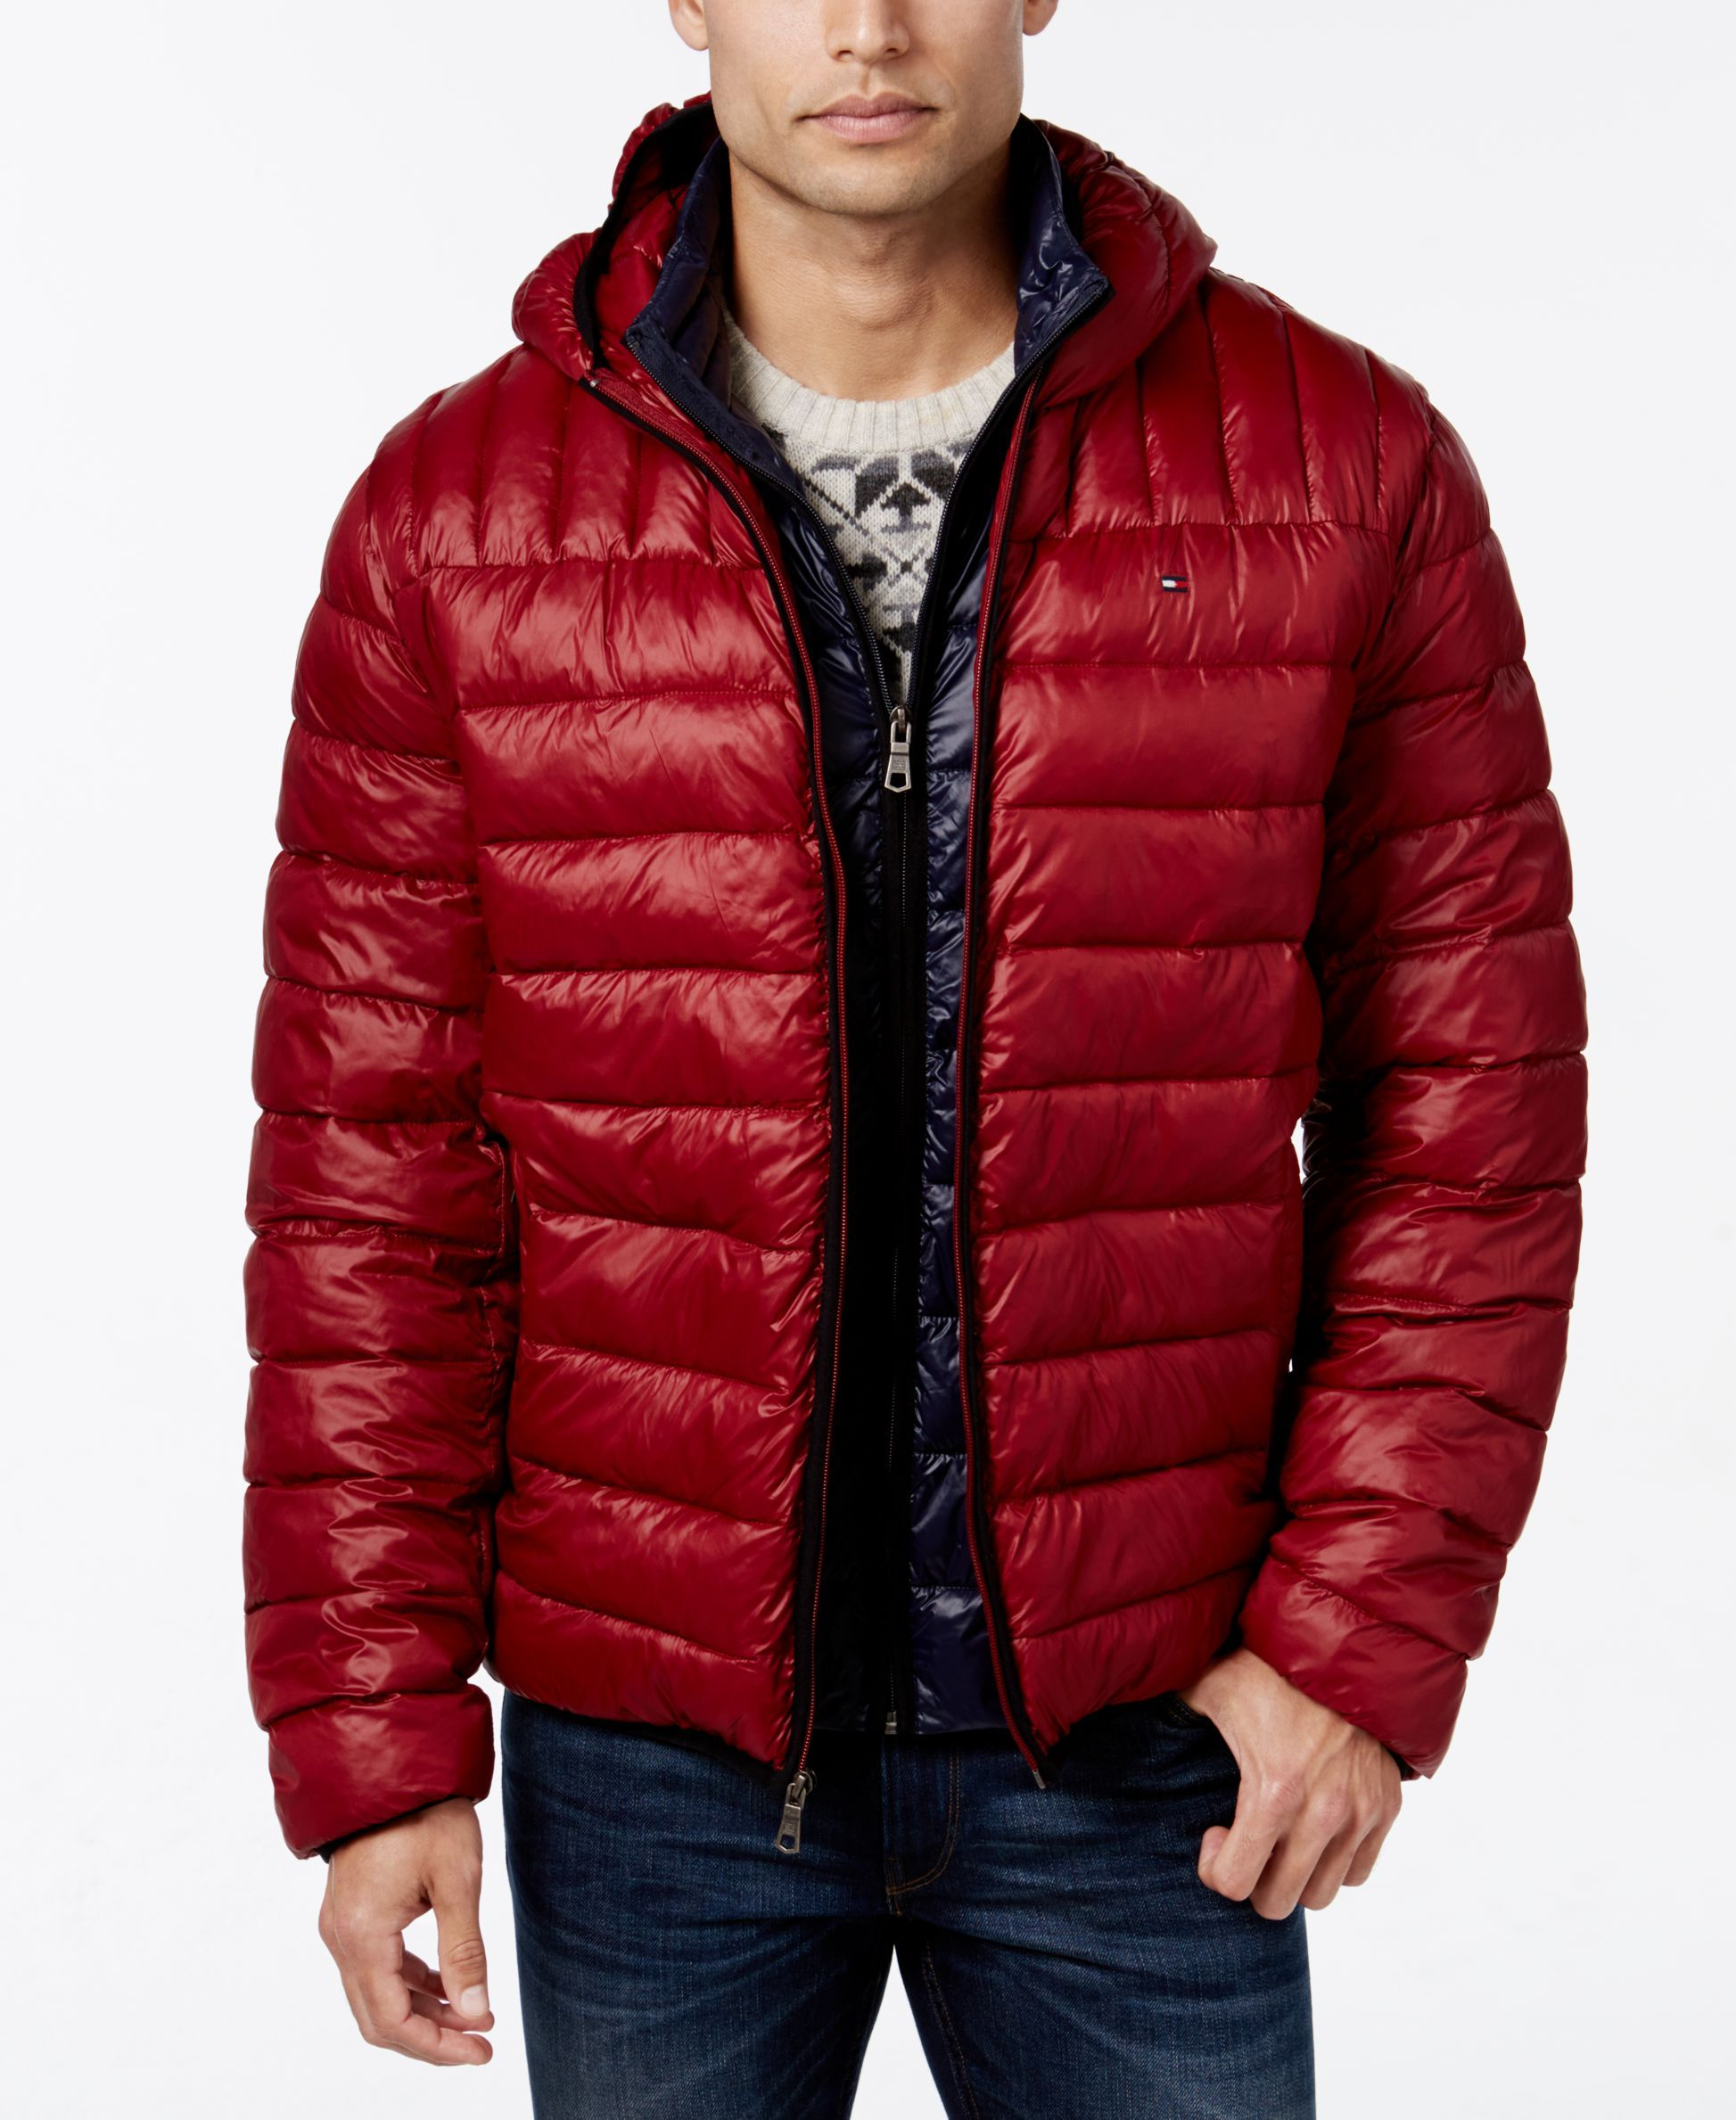 76d459b15 Tommy Hilfiger Hooded Packable Jacket | Buy down jacket | Packable ...